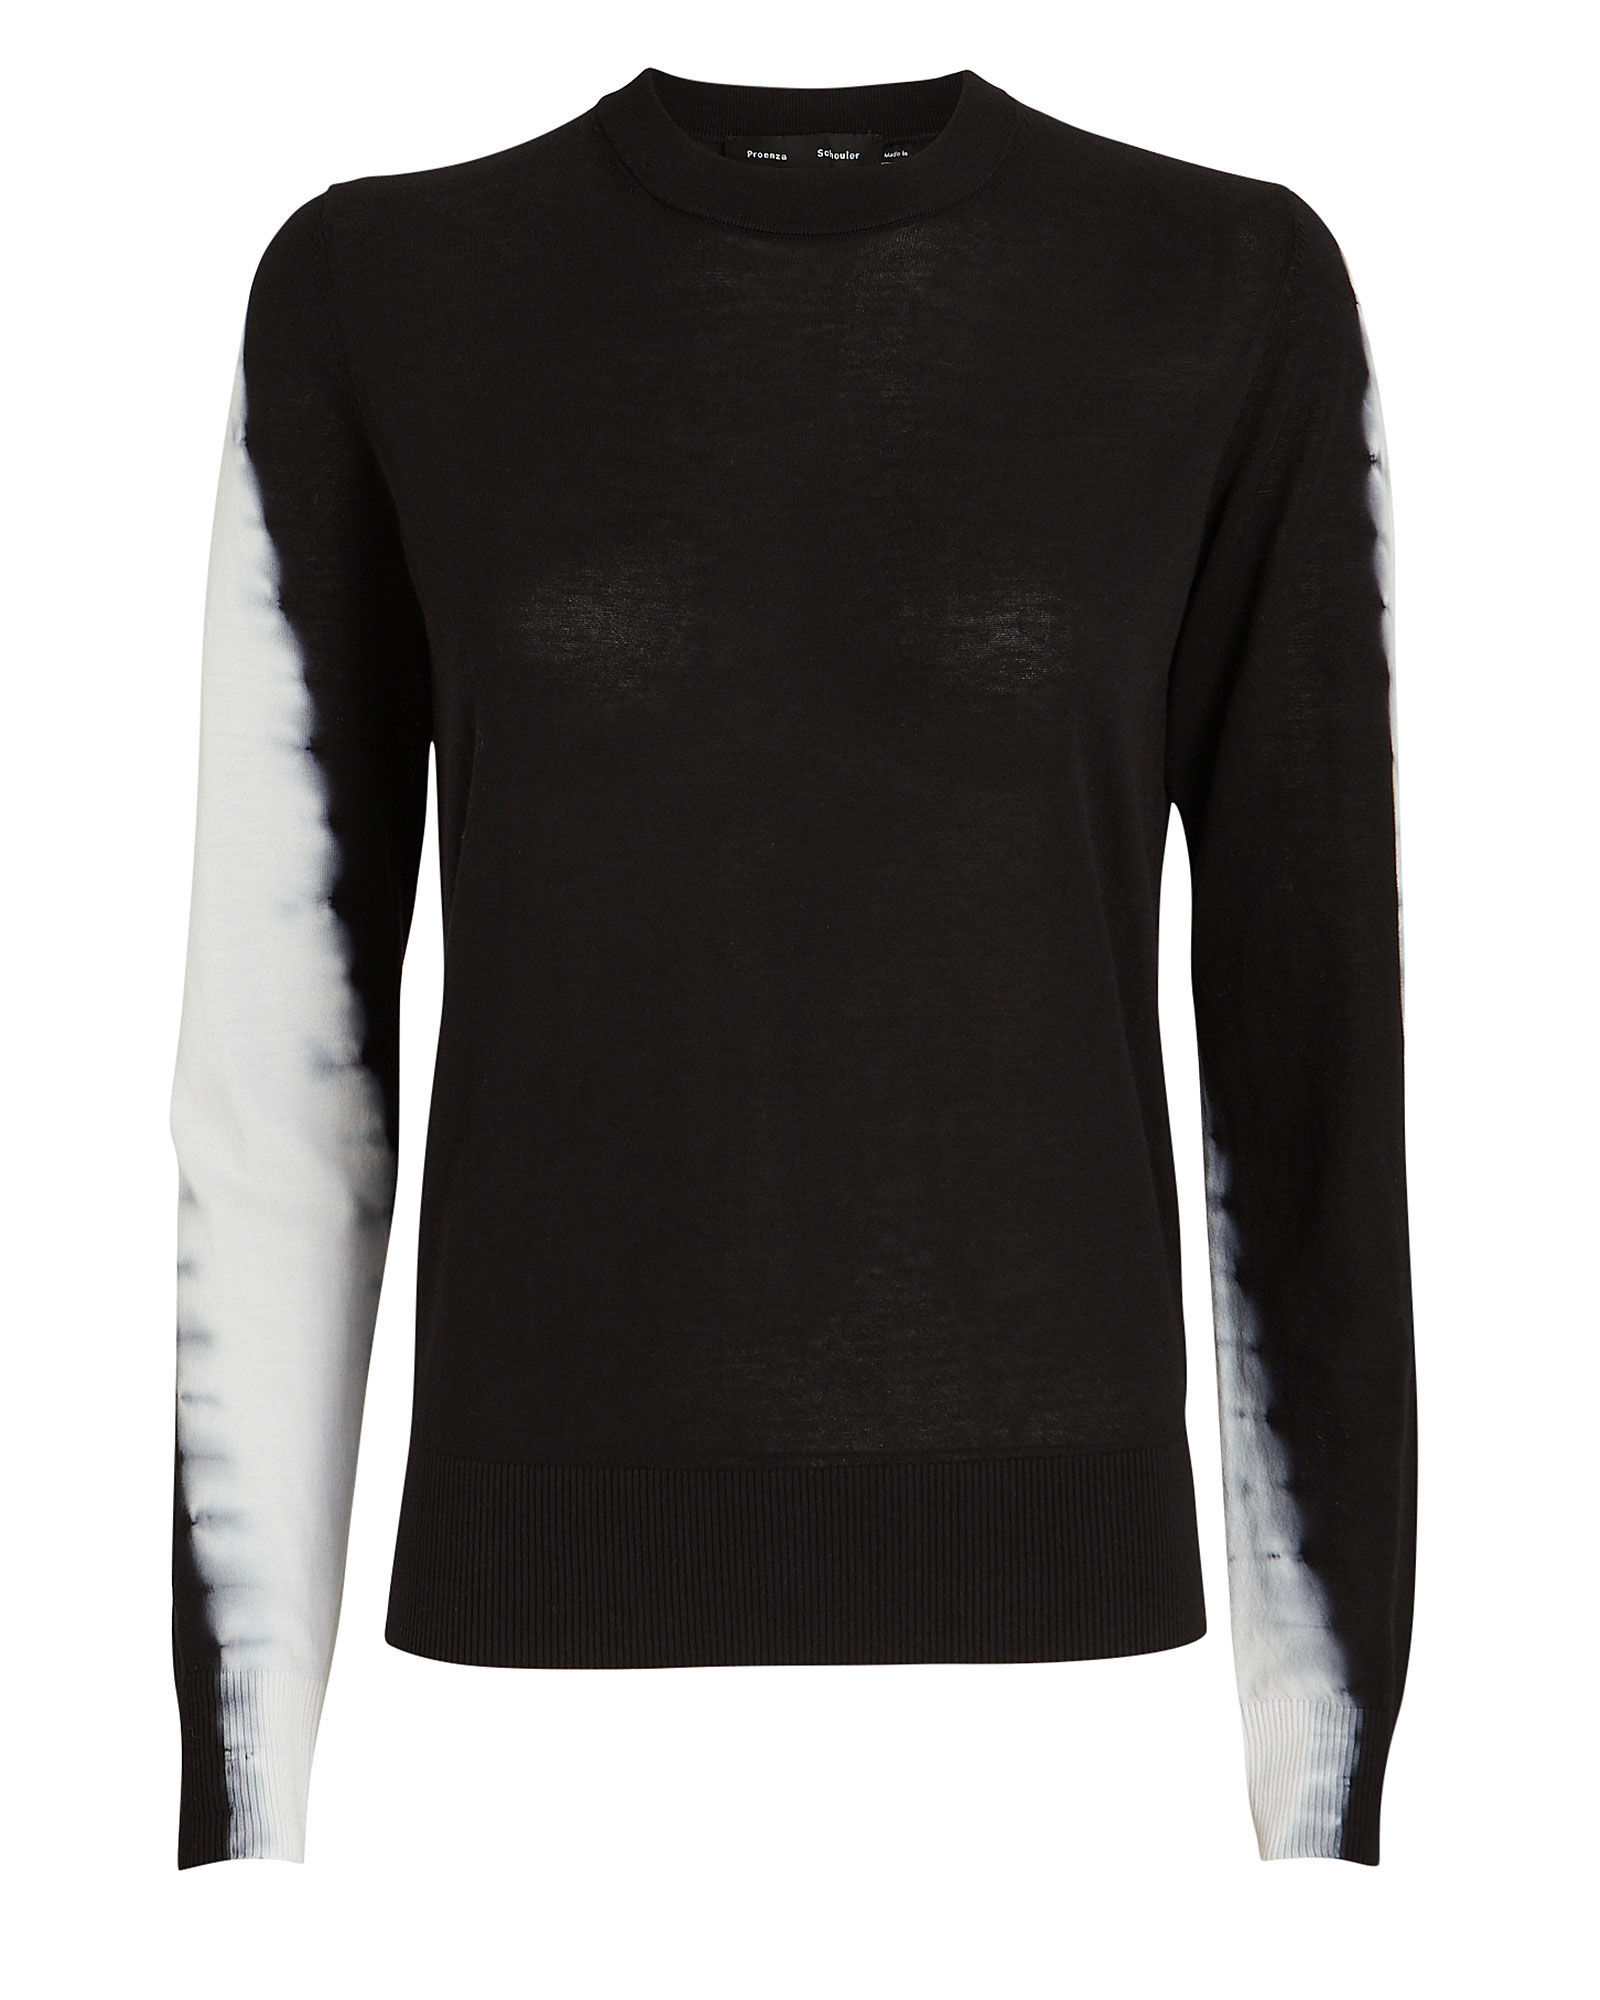 Tie-Dye Crewneck Sweater, BLACK/WHITE, hi-res